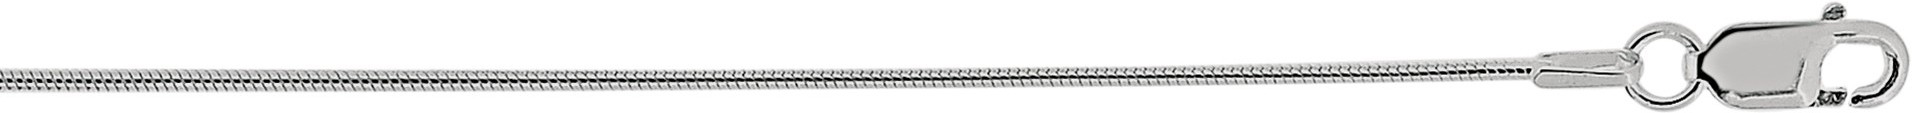 "24"" 1.1mm (0.04"") Polished Diamond Cut 925 Sterling Silver Snake Chain w/ Lobster Clasp"